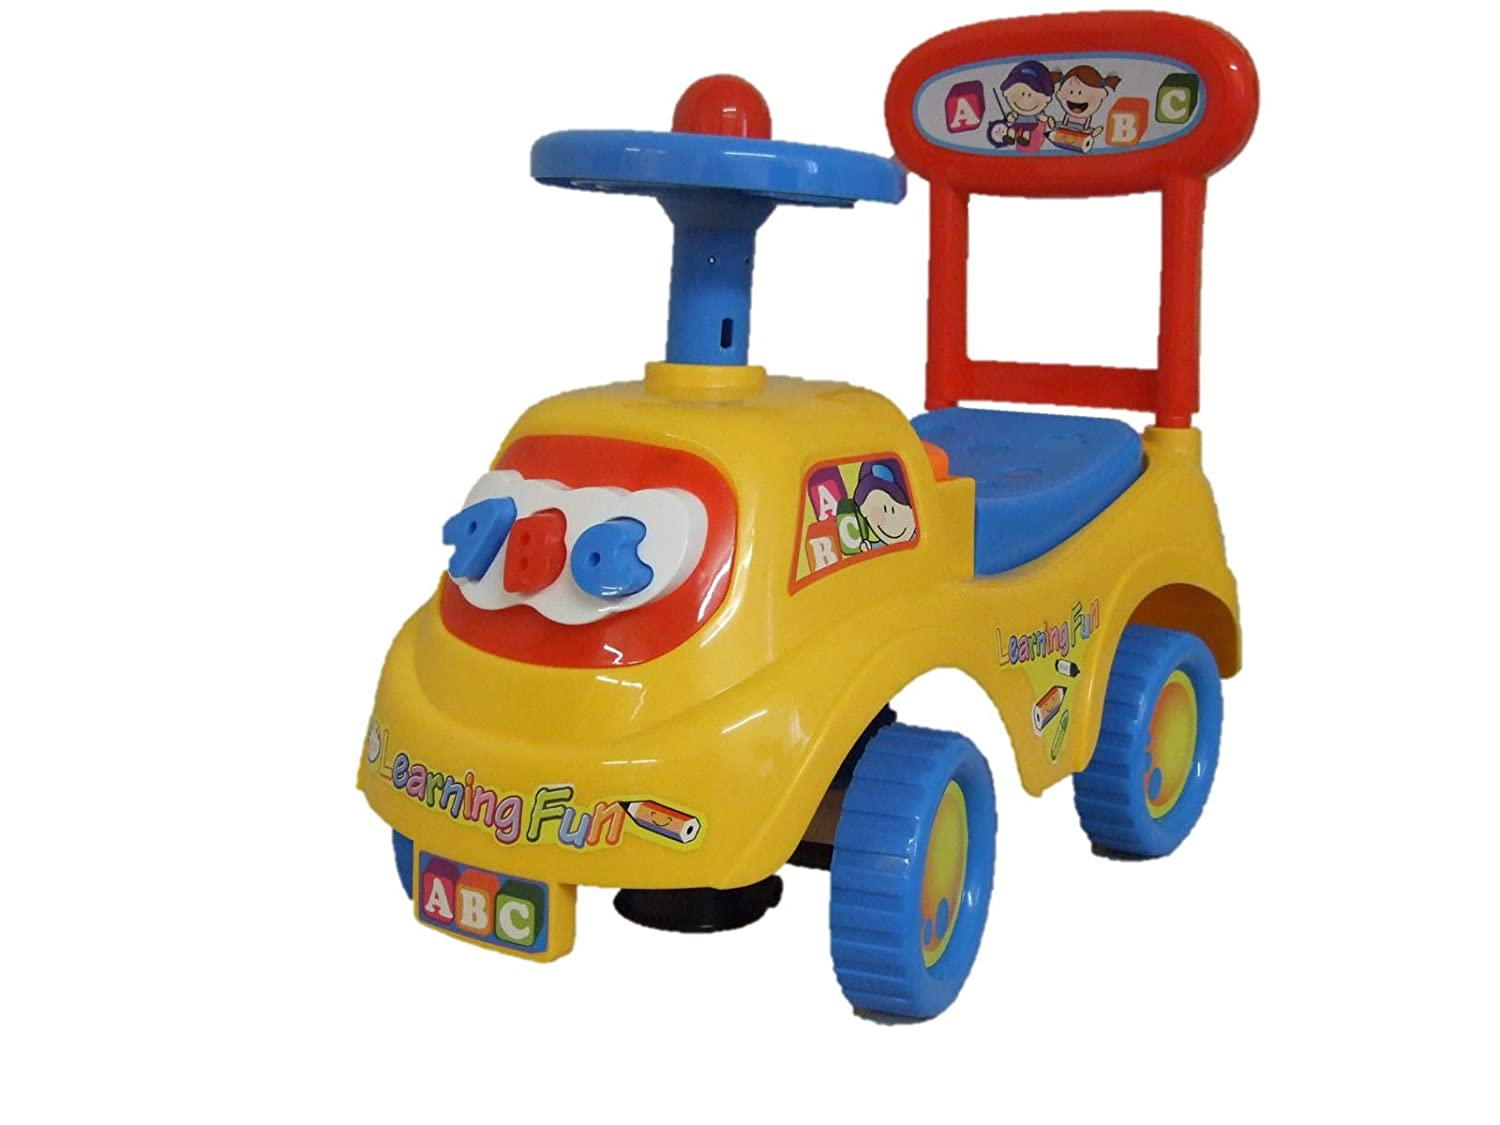 Allkindathings Push Along Ride On Car Children Car Toy Alphabet Themed Storage Red Yellow Blue Three Bowness Ltd 1883